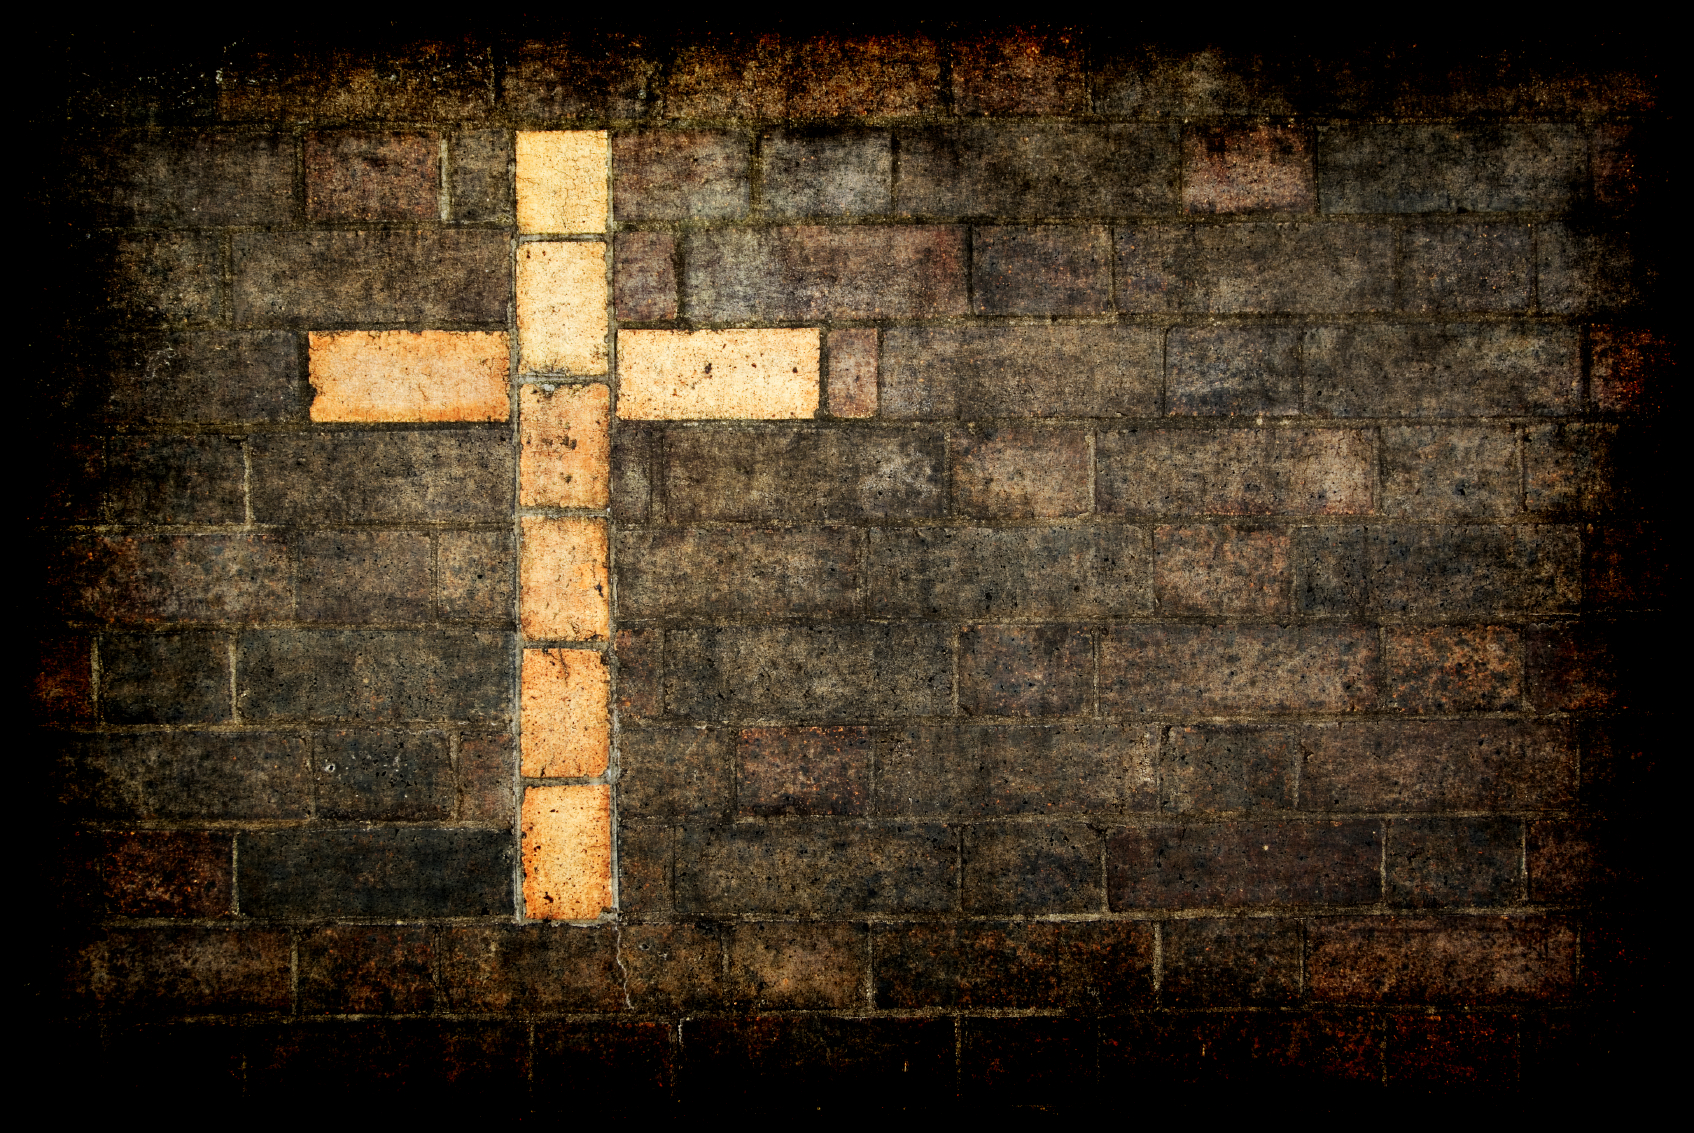 Christianity Divided by the Cross